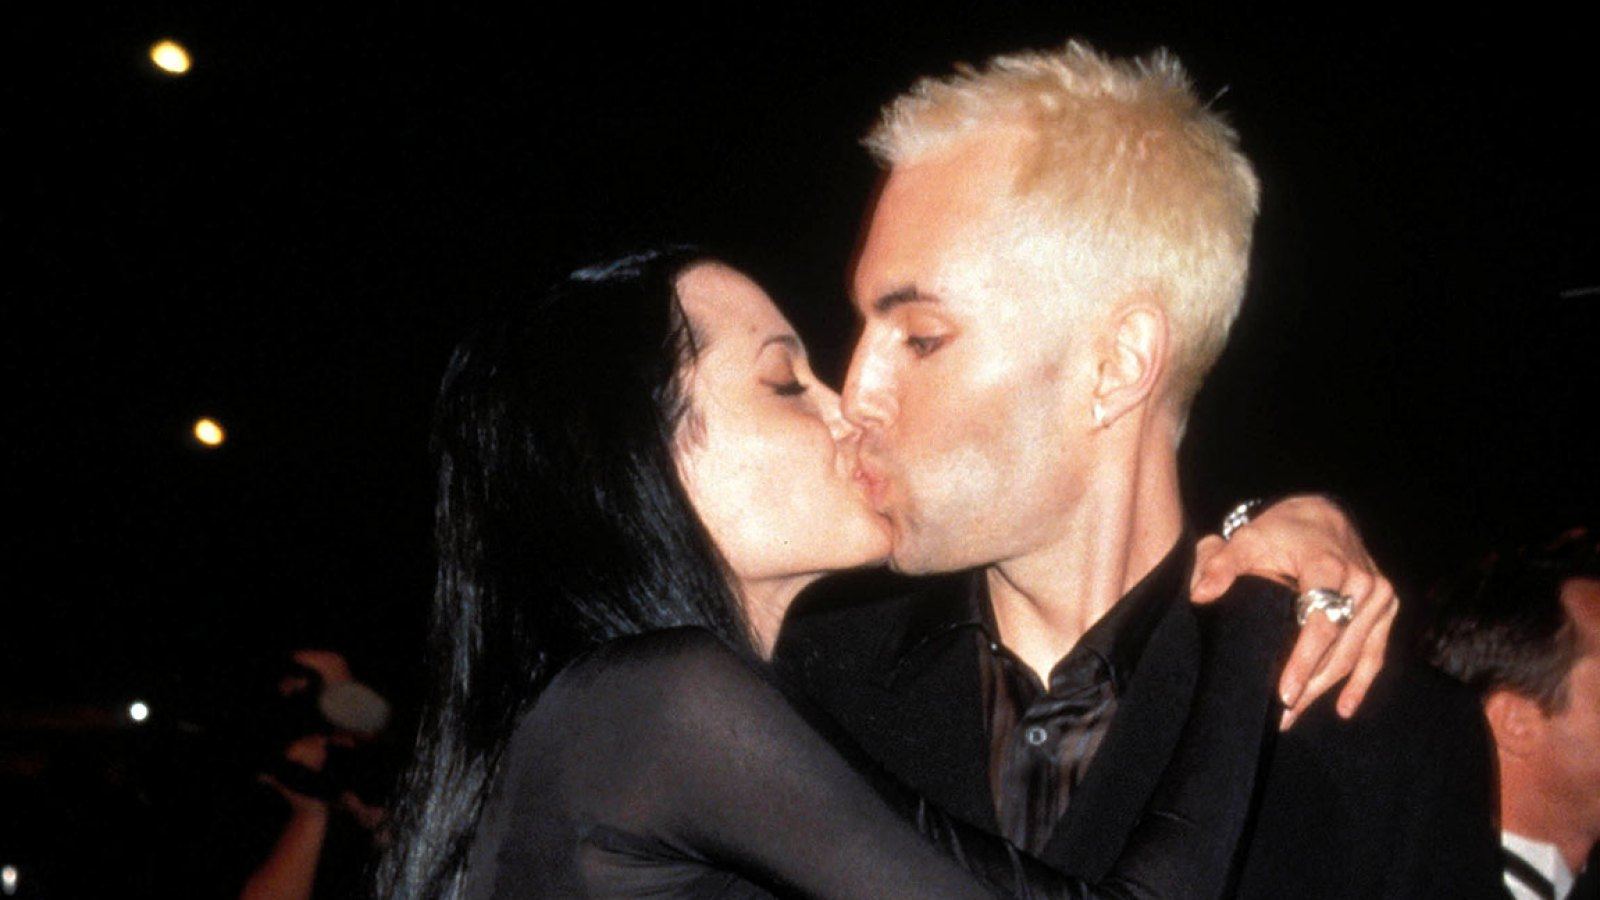 Angelina Jolie S Oscar Kiss With Brother James Haven Turns 20 Images, Photos, Reviews